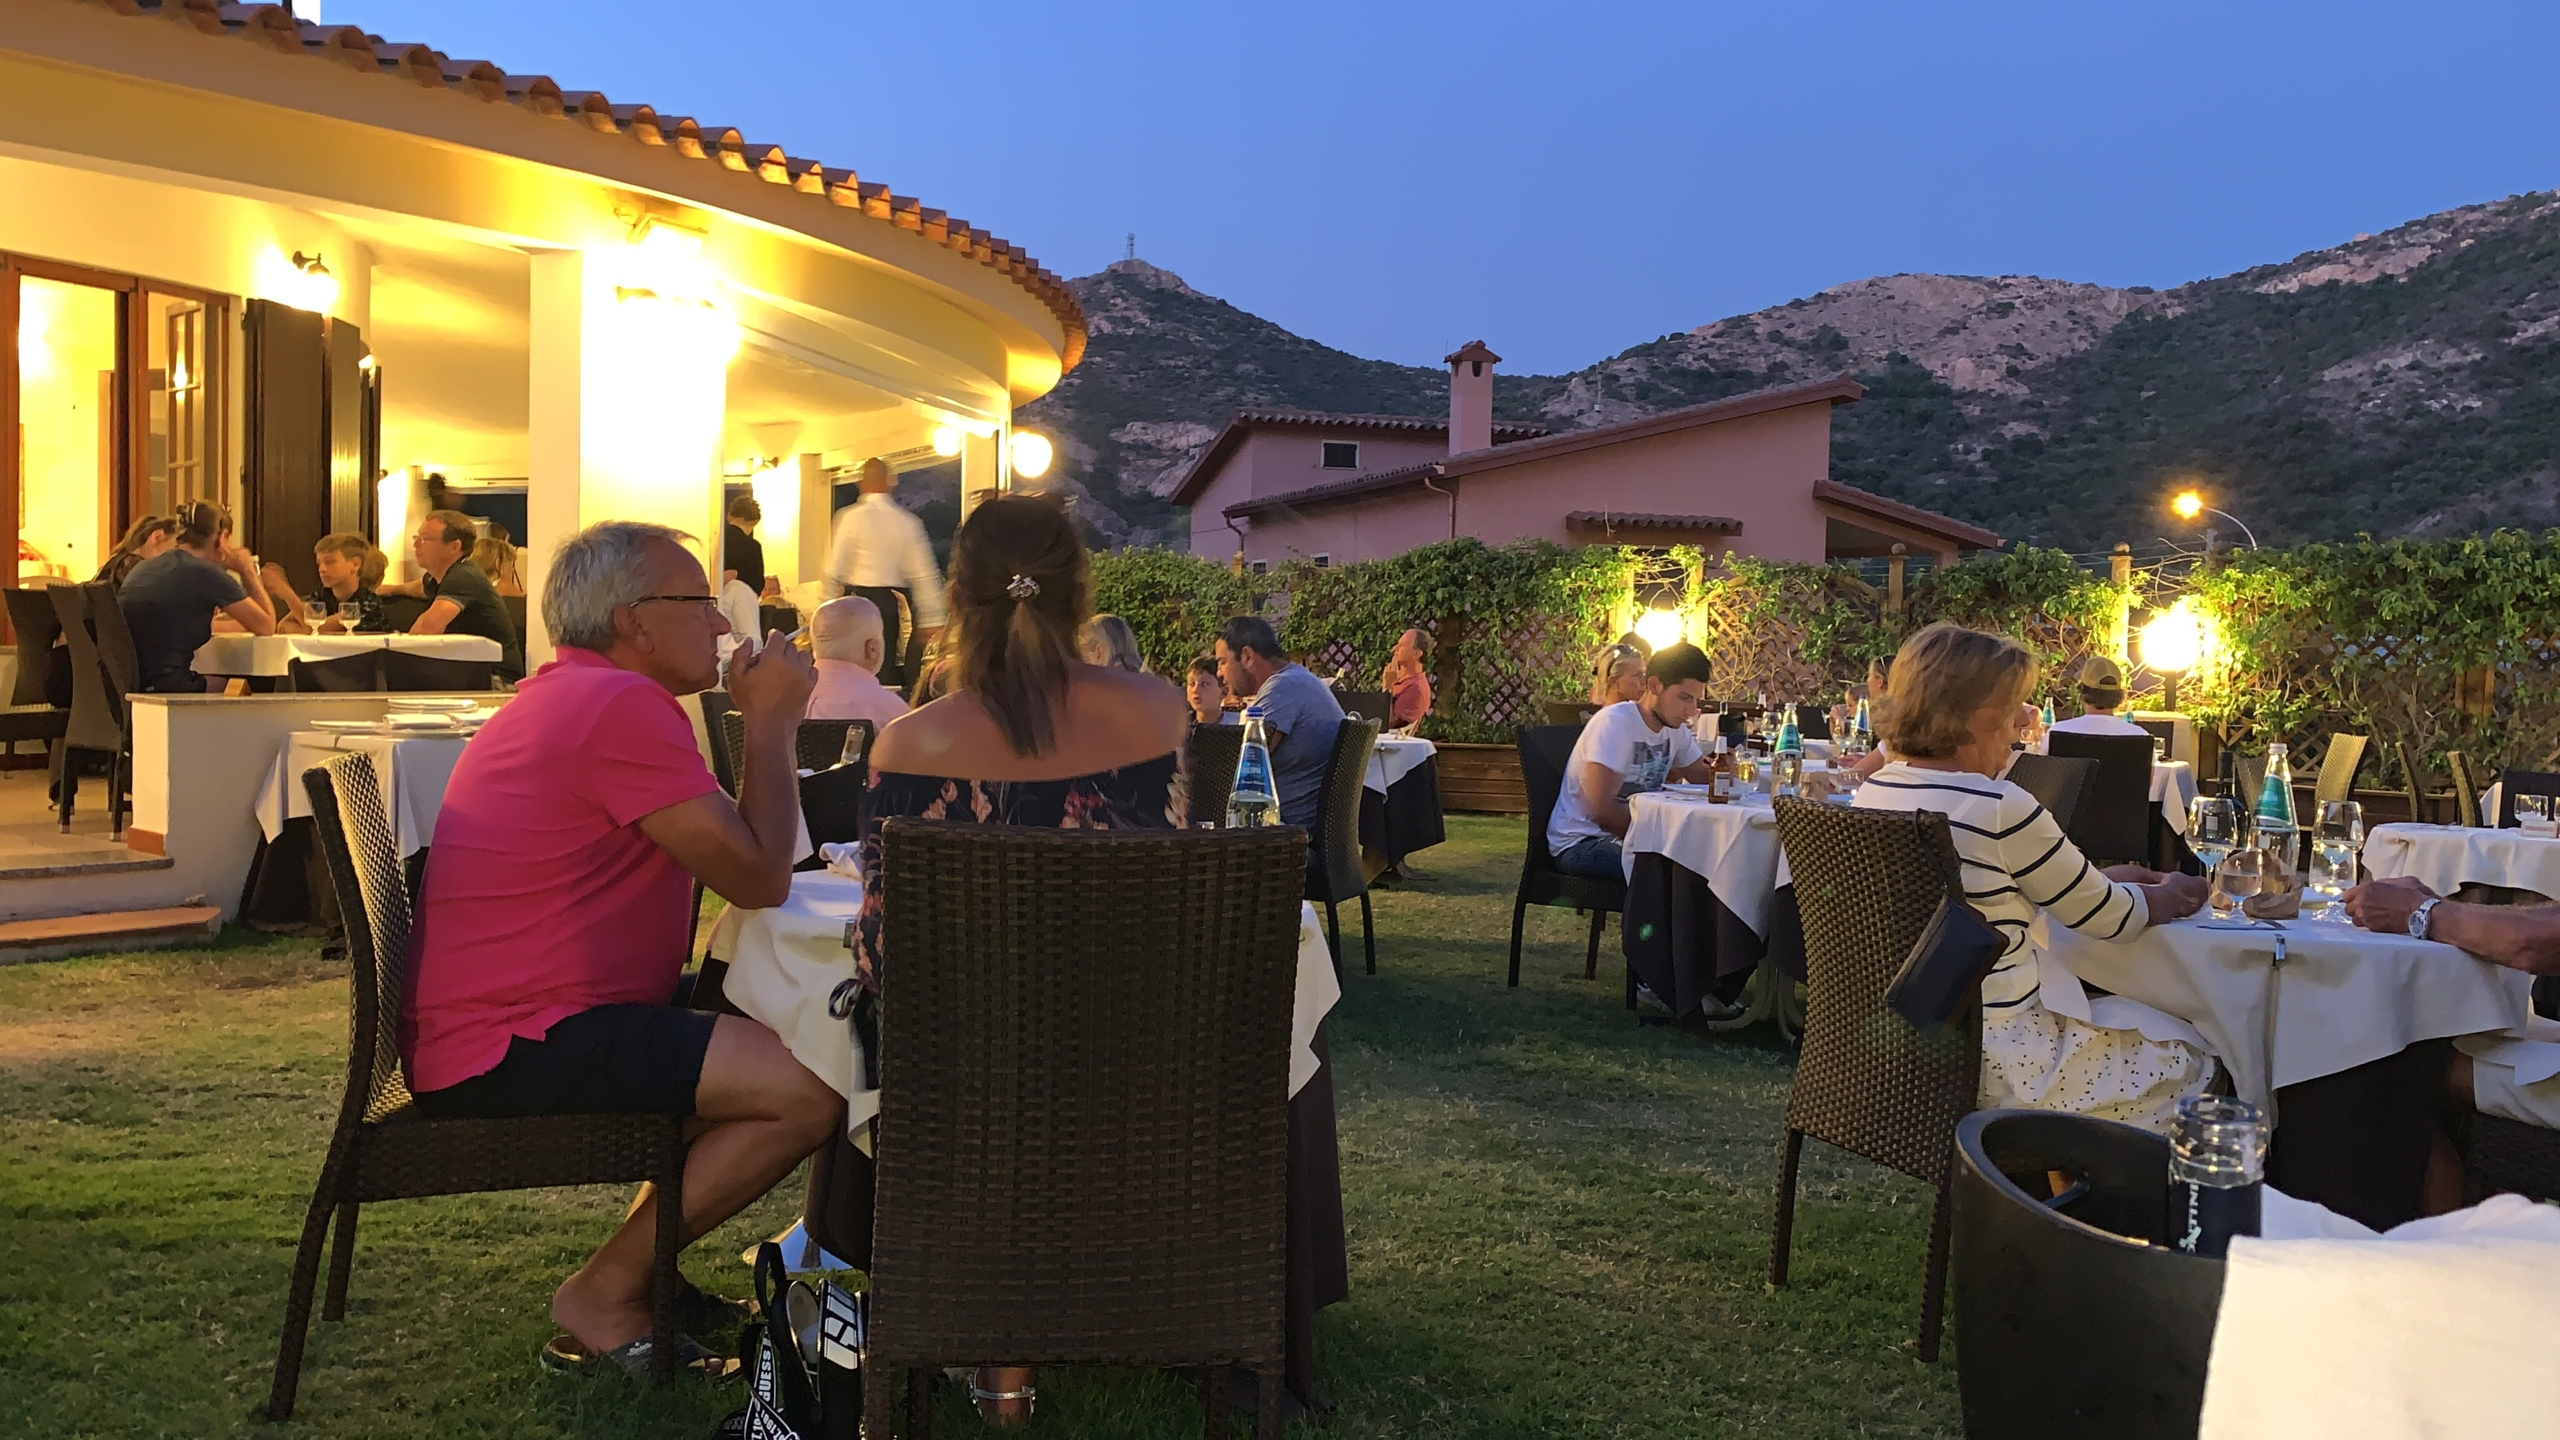 A GREAT PLACE TO TRY THE GRILLED PIGLET SARDINIAN STYLE